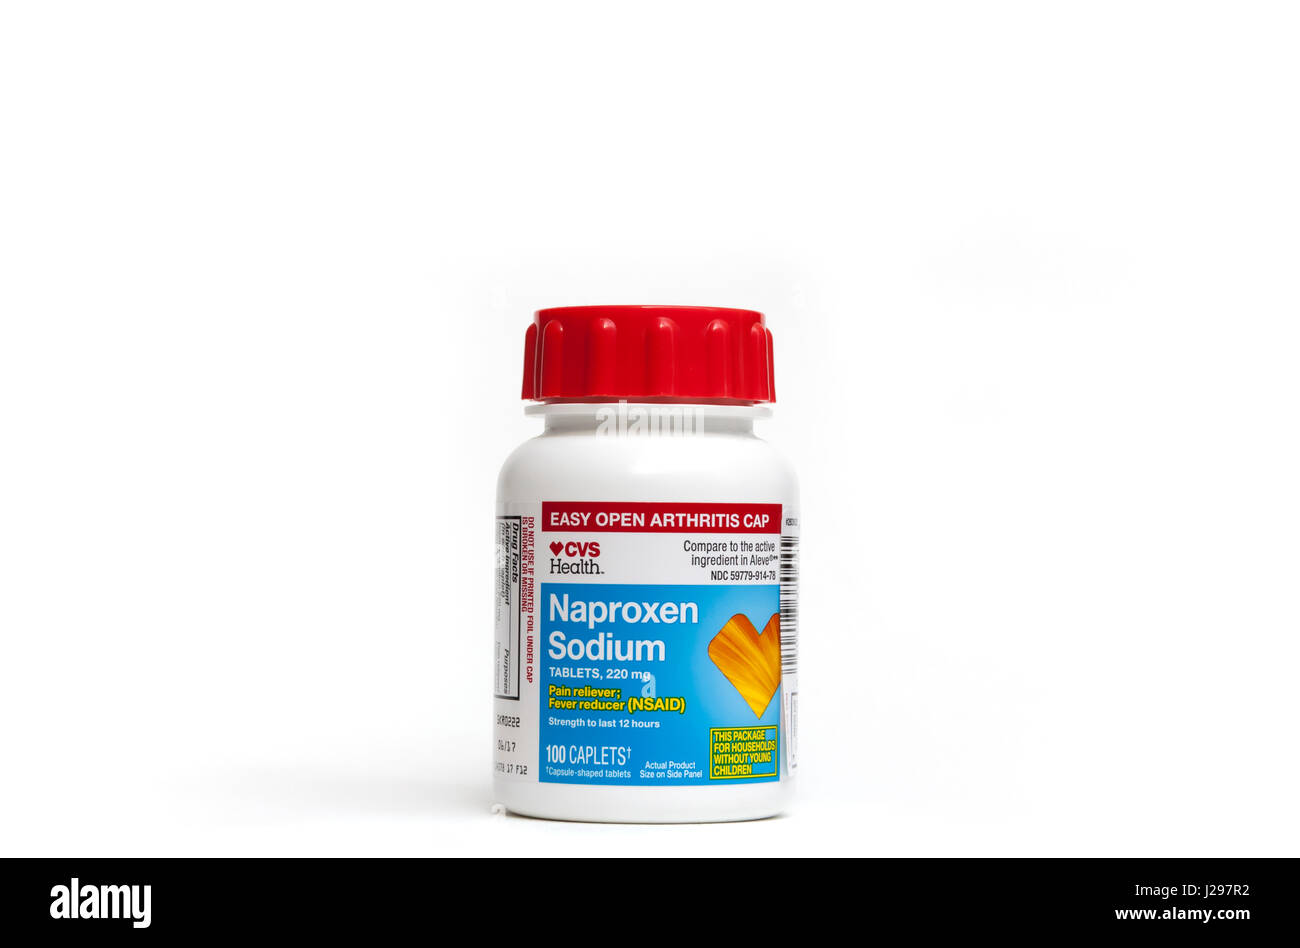 Naproxen Sodium A Cvs Store Brand Generic Alternative To The More